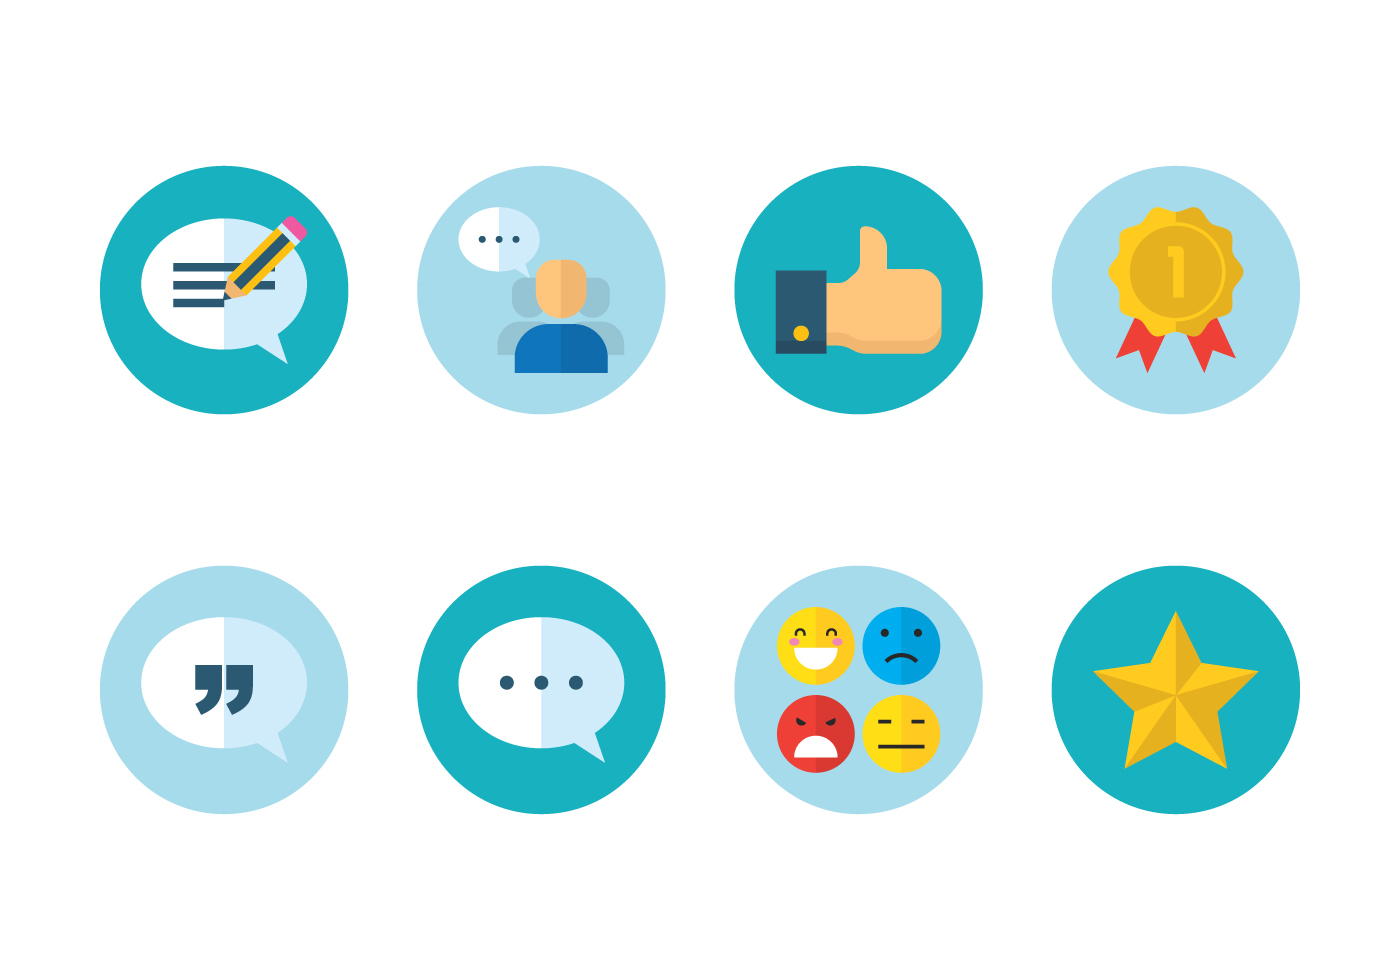 customer review icon download free vector art stock